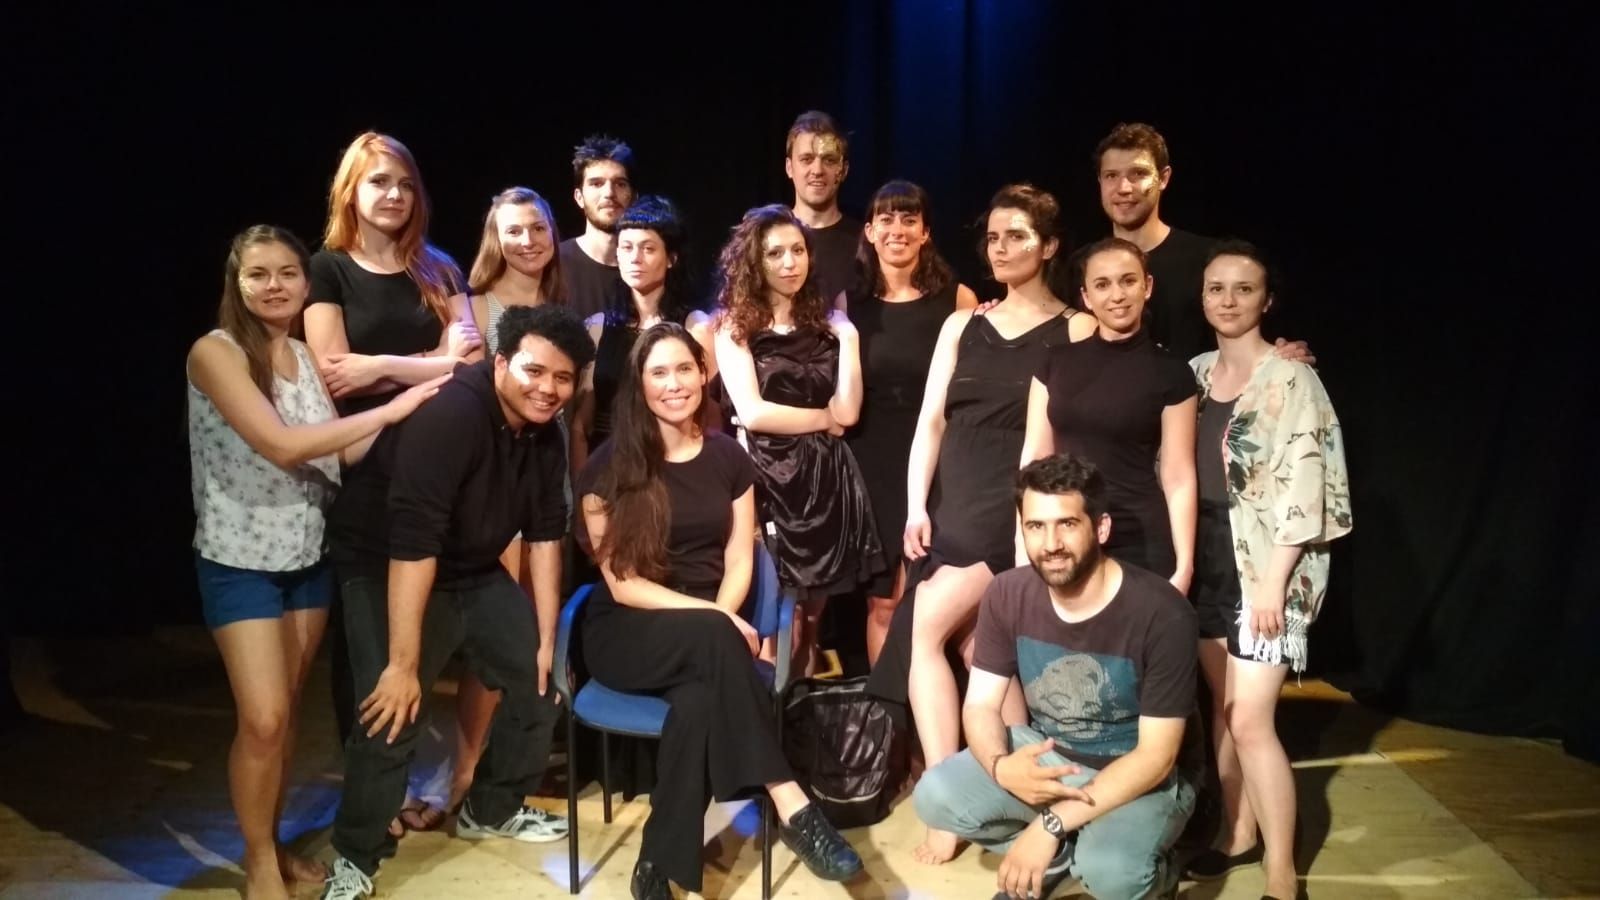 """Keeping up with the Greeks"" show. Group photo of the cast and team, fifteen people."